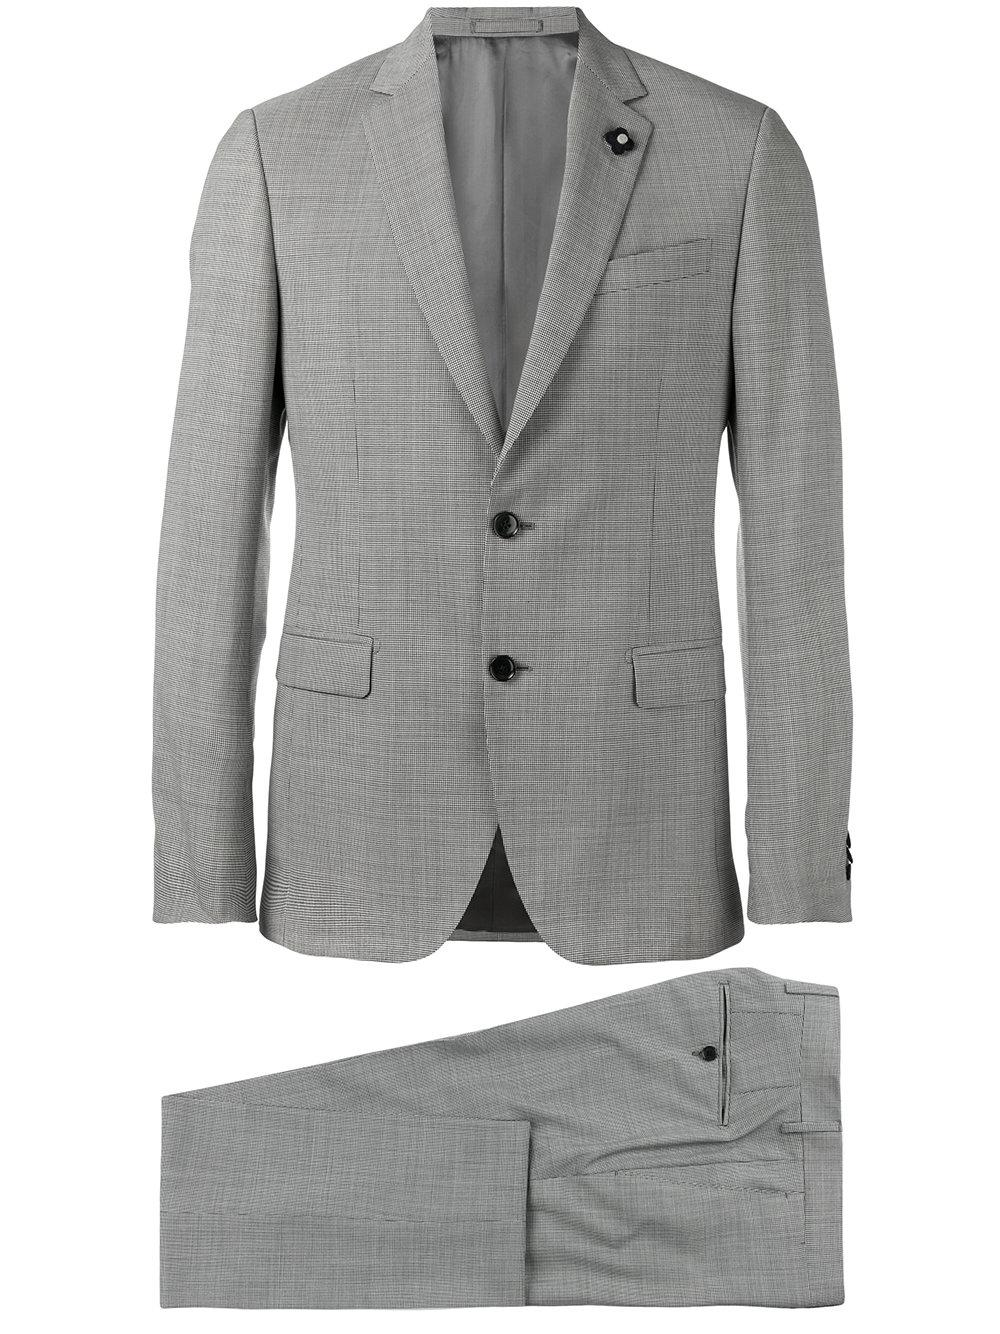 Find great deals on eBay for Mens 2 Piece Suit in Suits for Men. Shop with confidence.